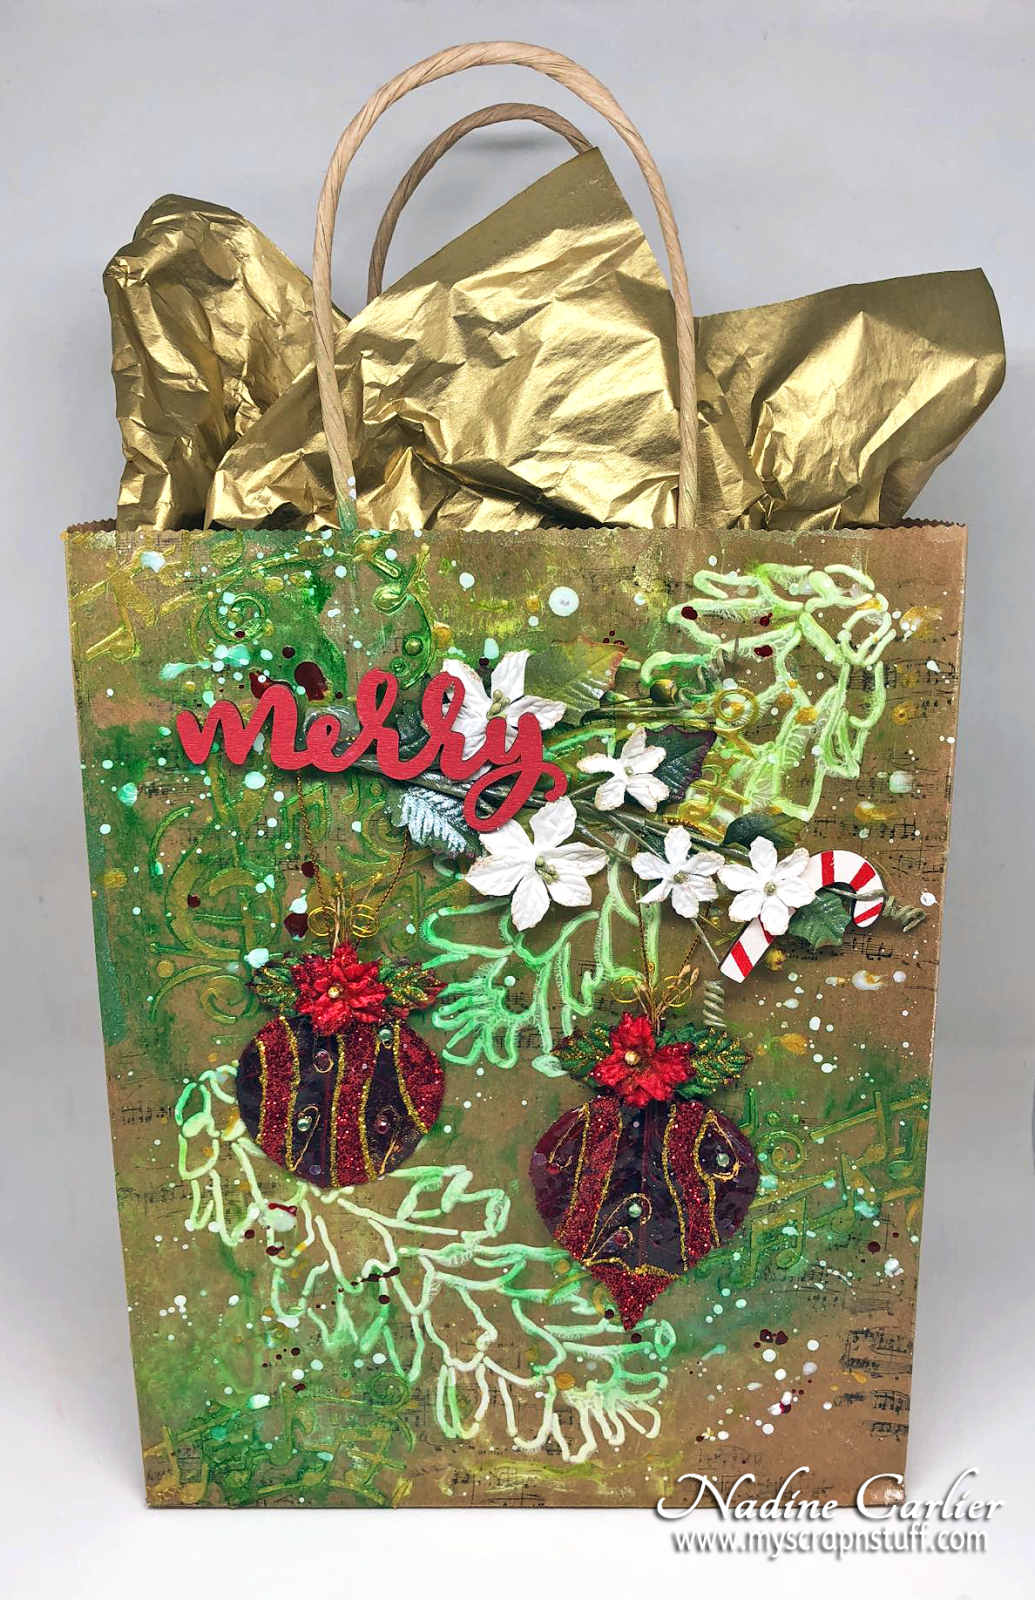 Nadine Carlier Diy Mixed Media Christmas Gift Bag